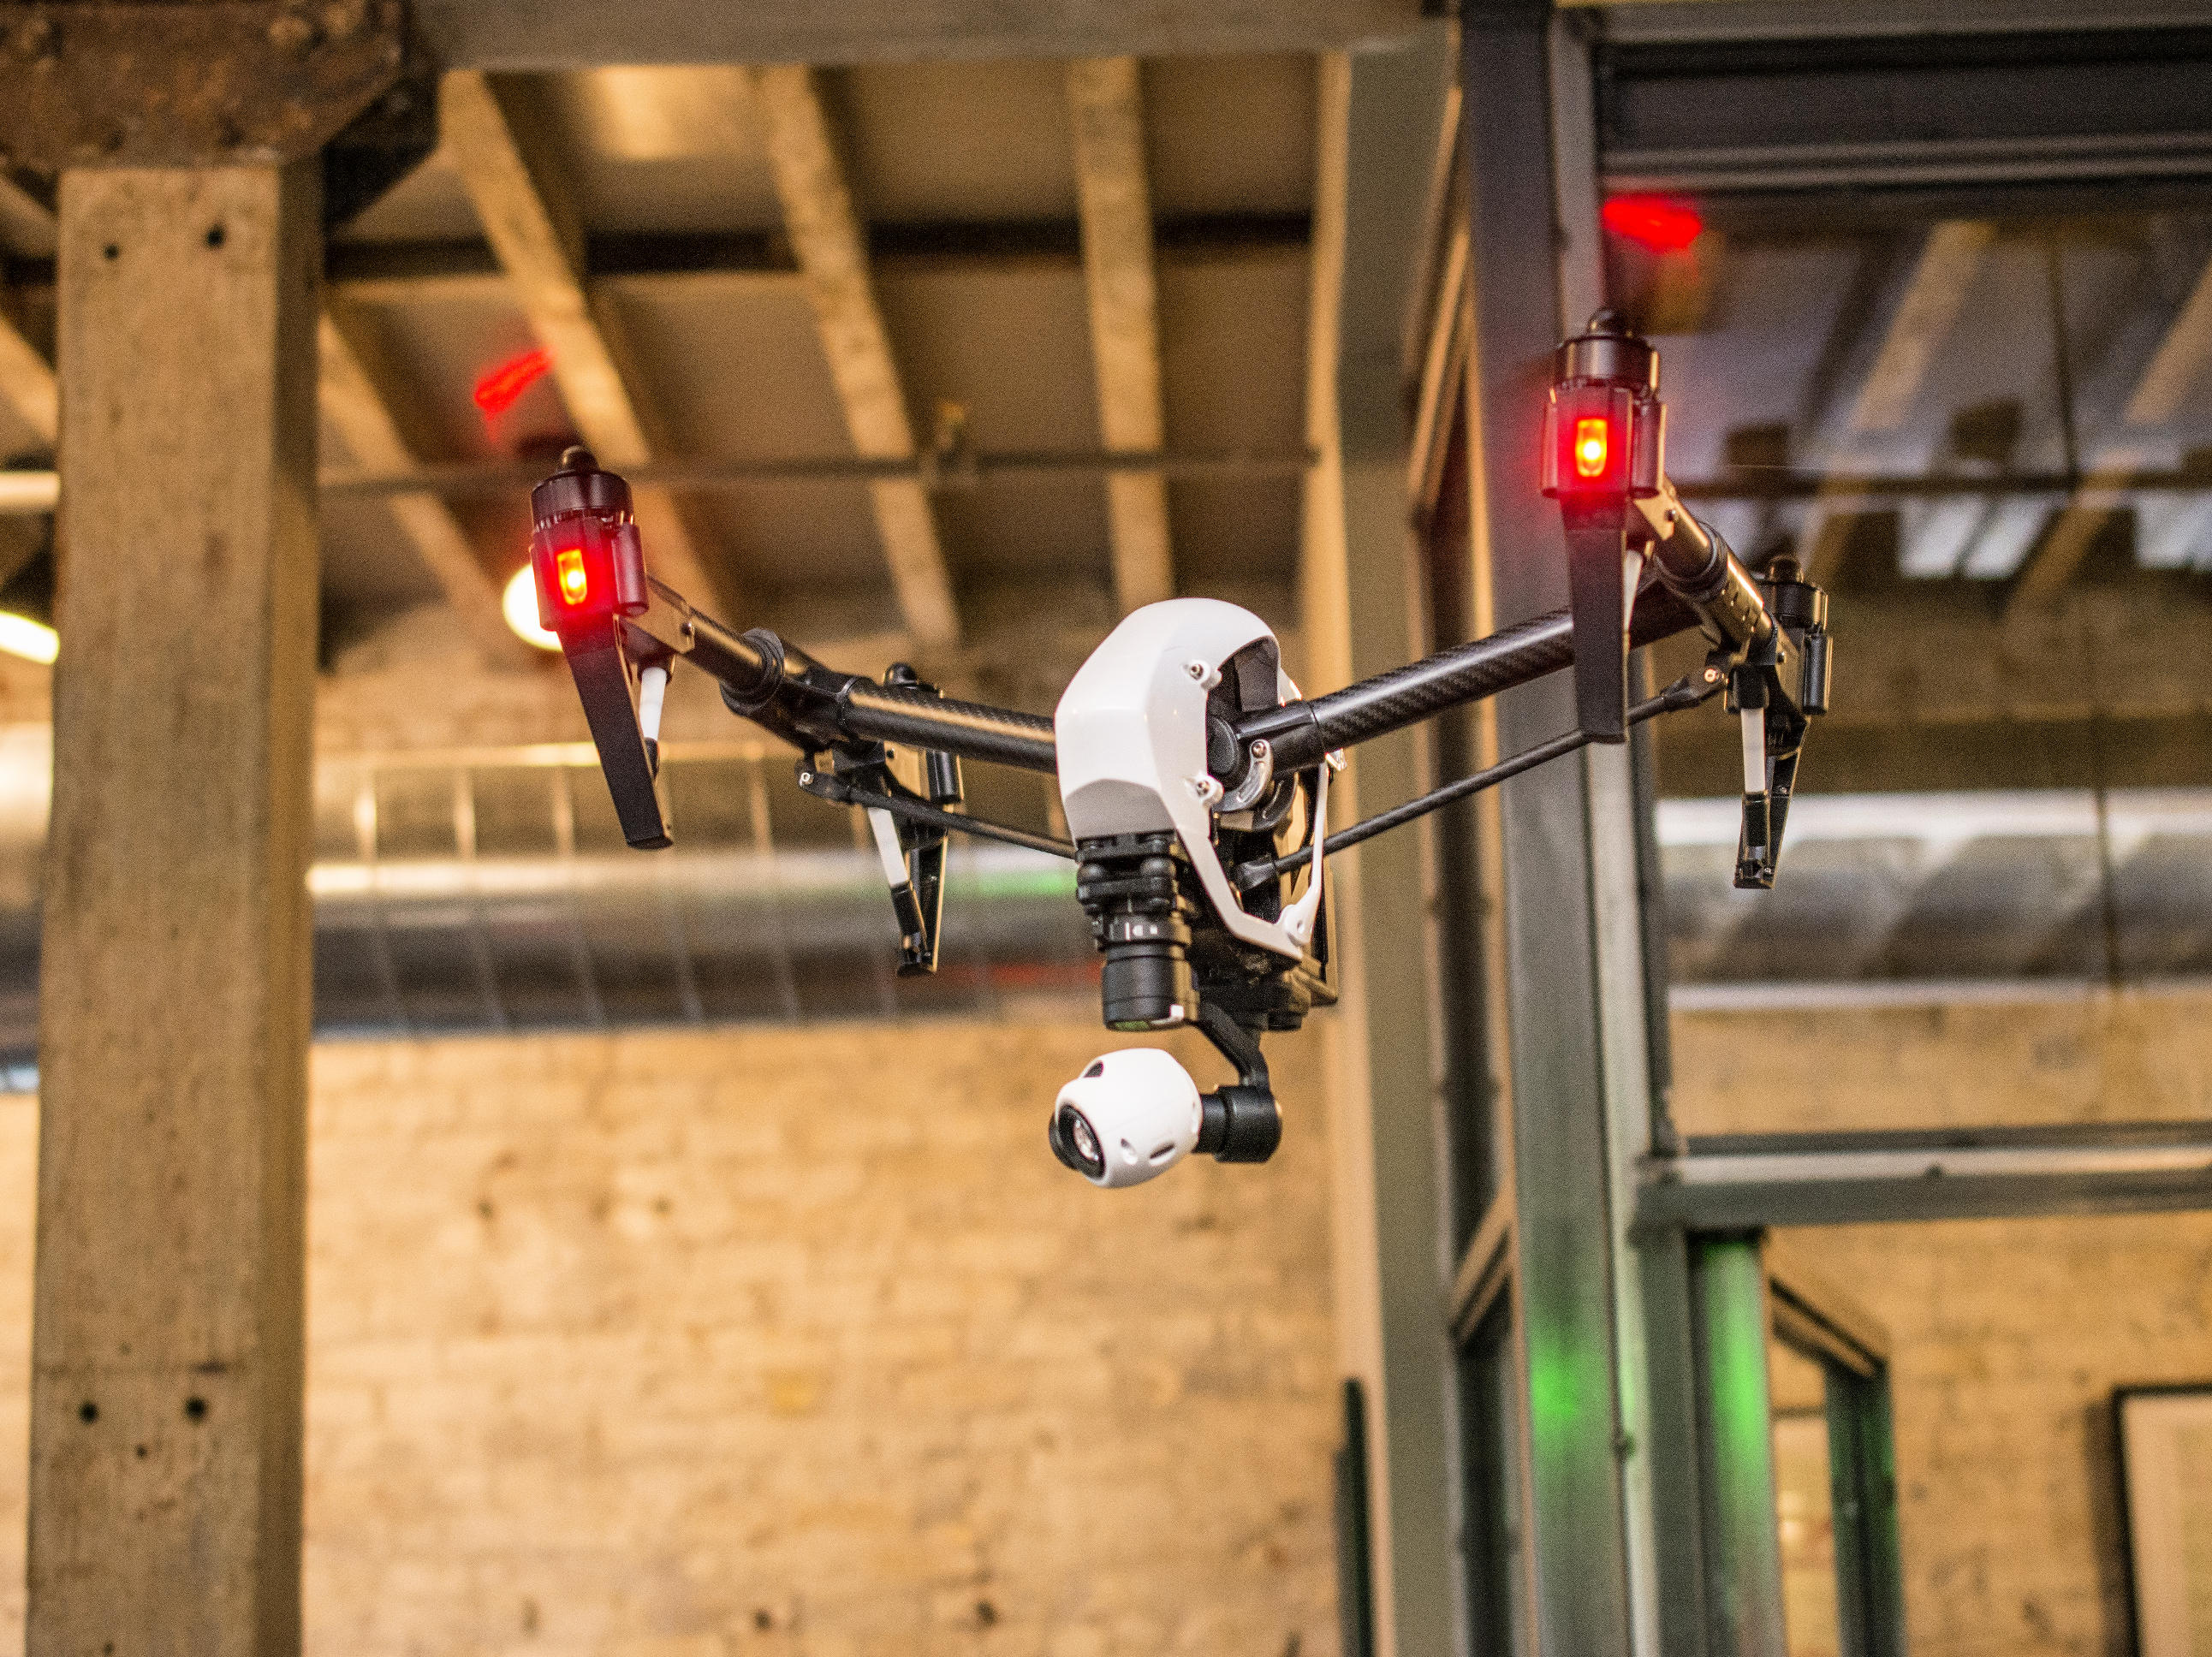 The DJI Inspire has a relatively high-end camera suitable that can take 12-megapixel still images or 4K video.